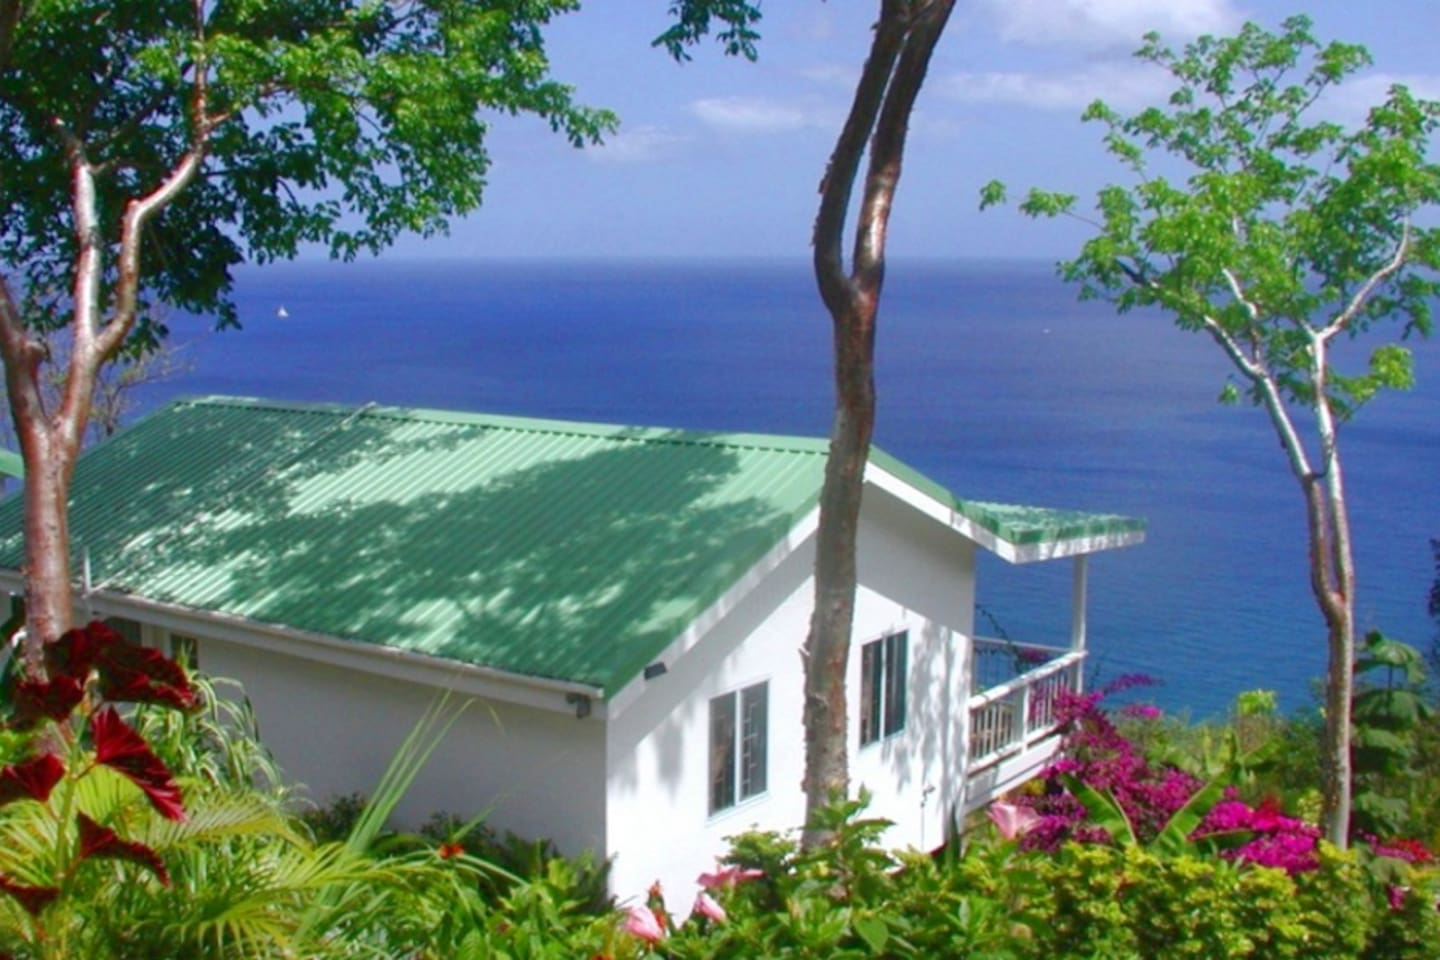 AVOCADO COTTAGE @ NATURE'S PARADISE - CARIBBEAN SEA VIEWS